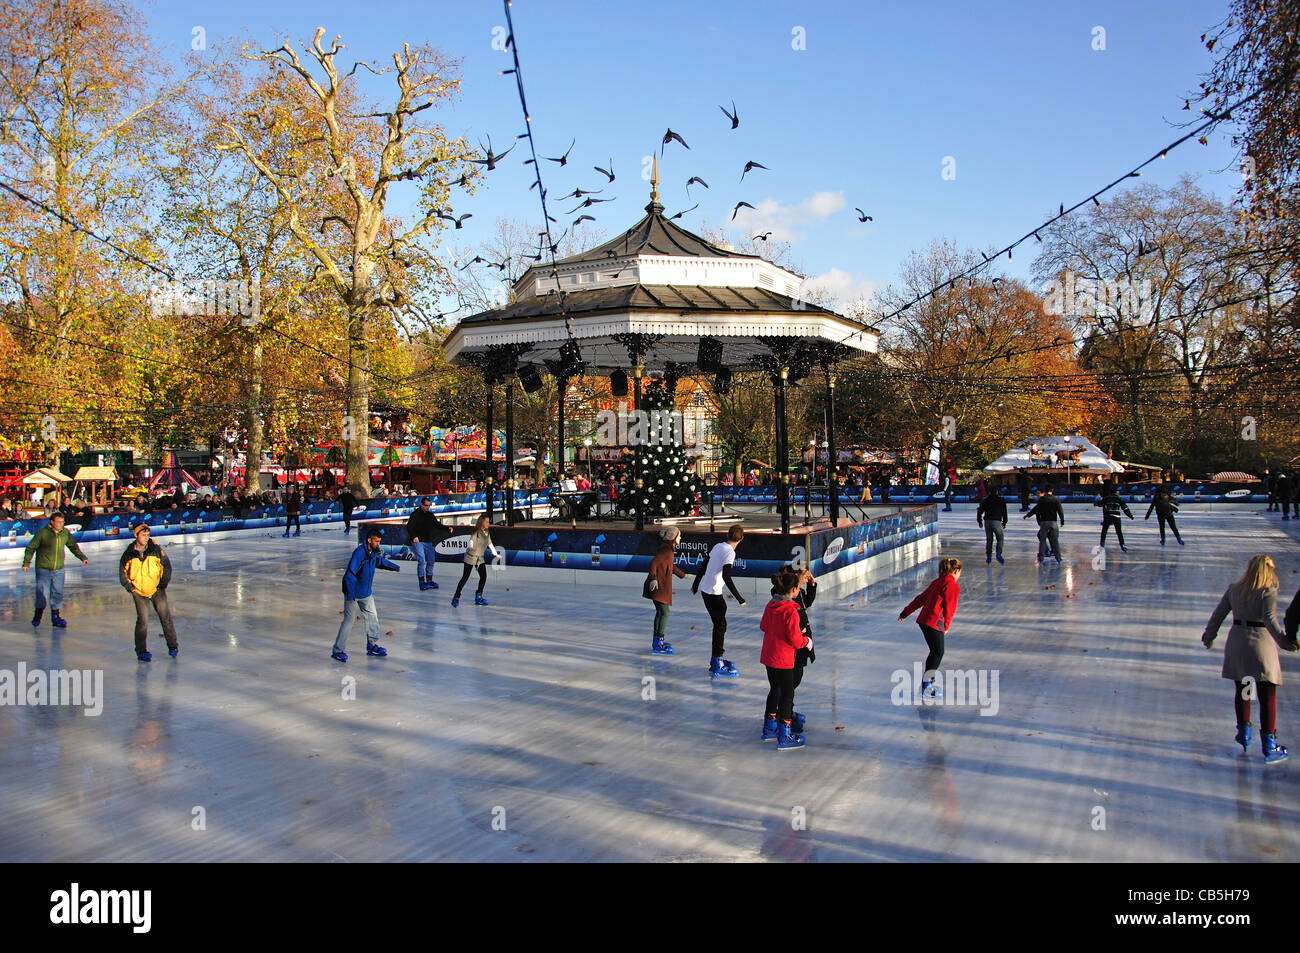 Victorian bandstand and ice skating rink at 'Winter Wonderland' Hyde Park, City of Westminster, London, - Stock Image